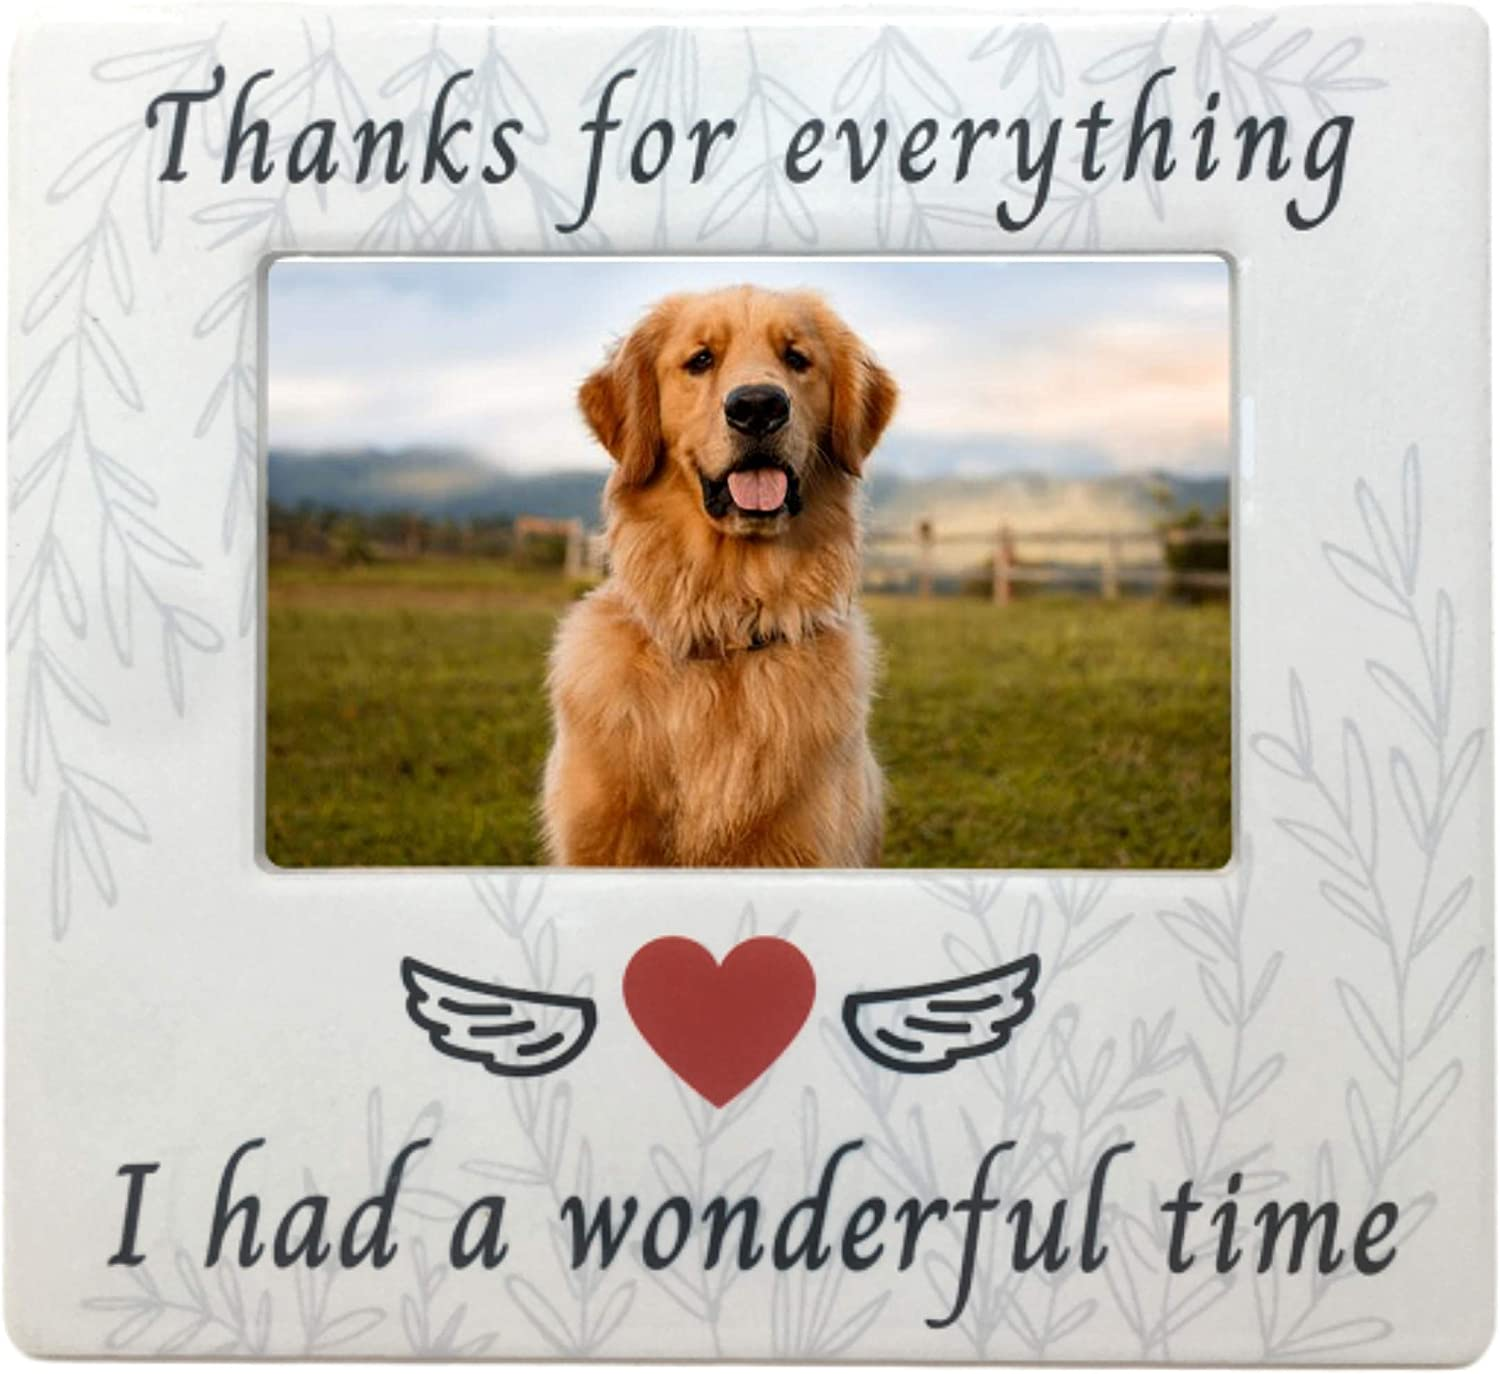 BANBERRY Spasm price DESIGNS Pet Memorial Picture Everyth for Frame Thanks - Cheap mail order sales